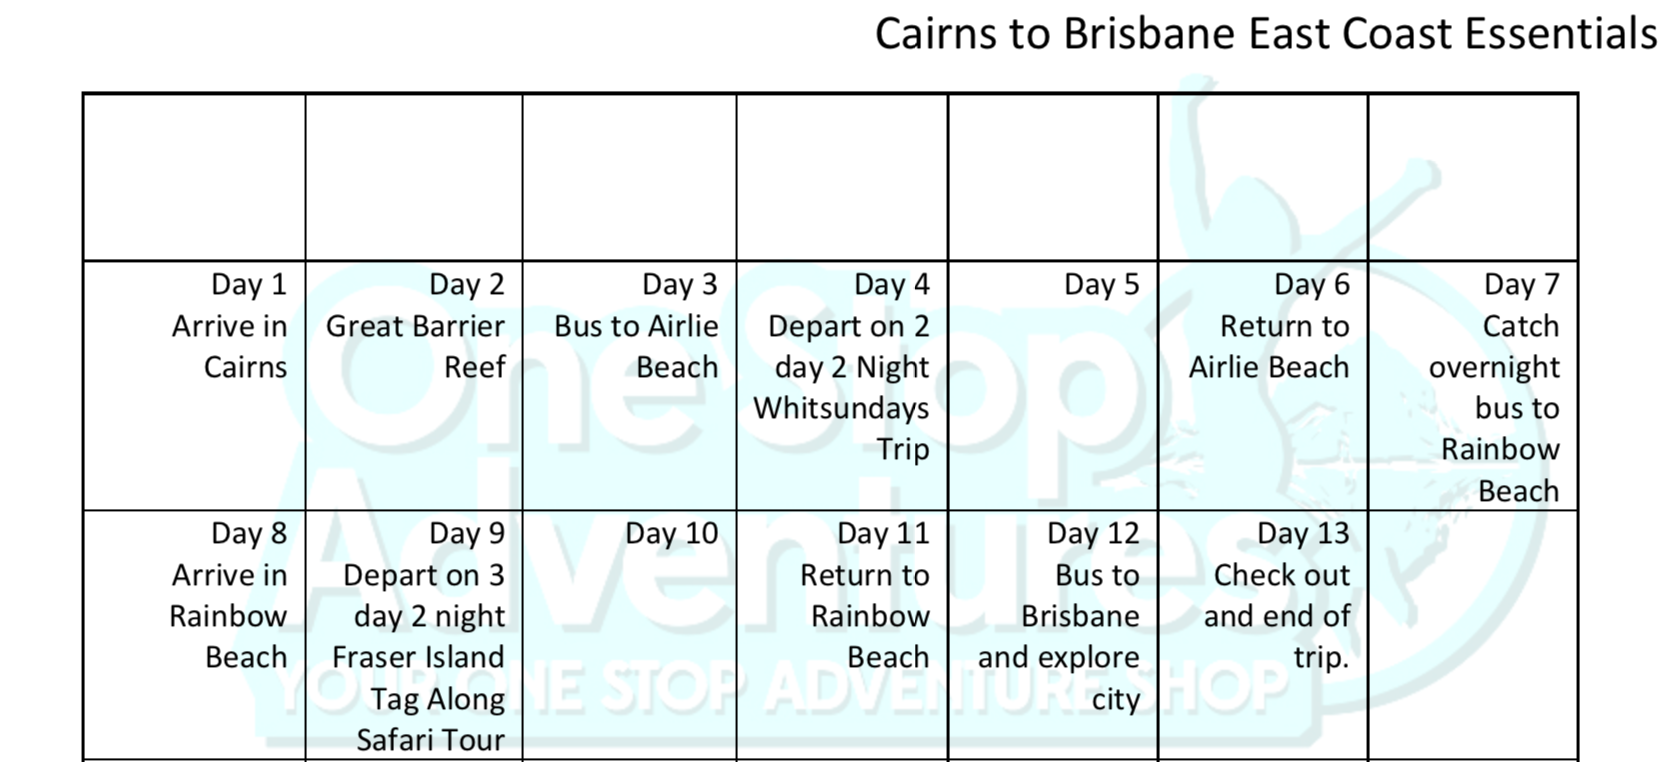 Cairns to Brisbane East Coast Itinerary